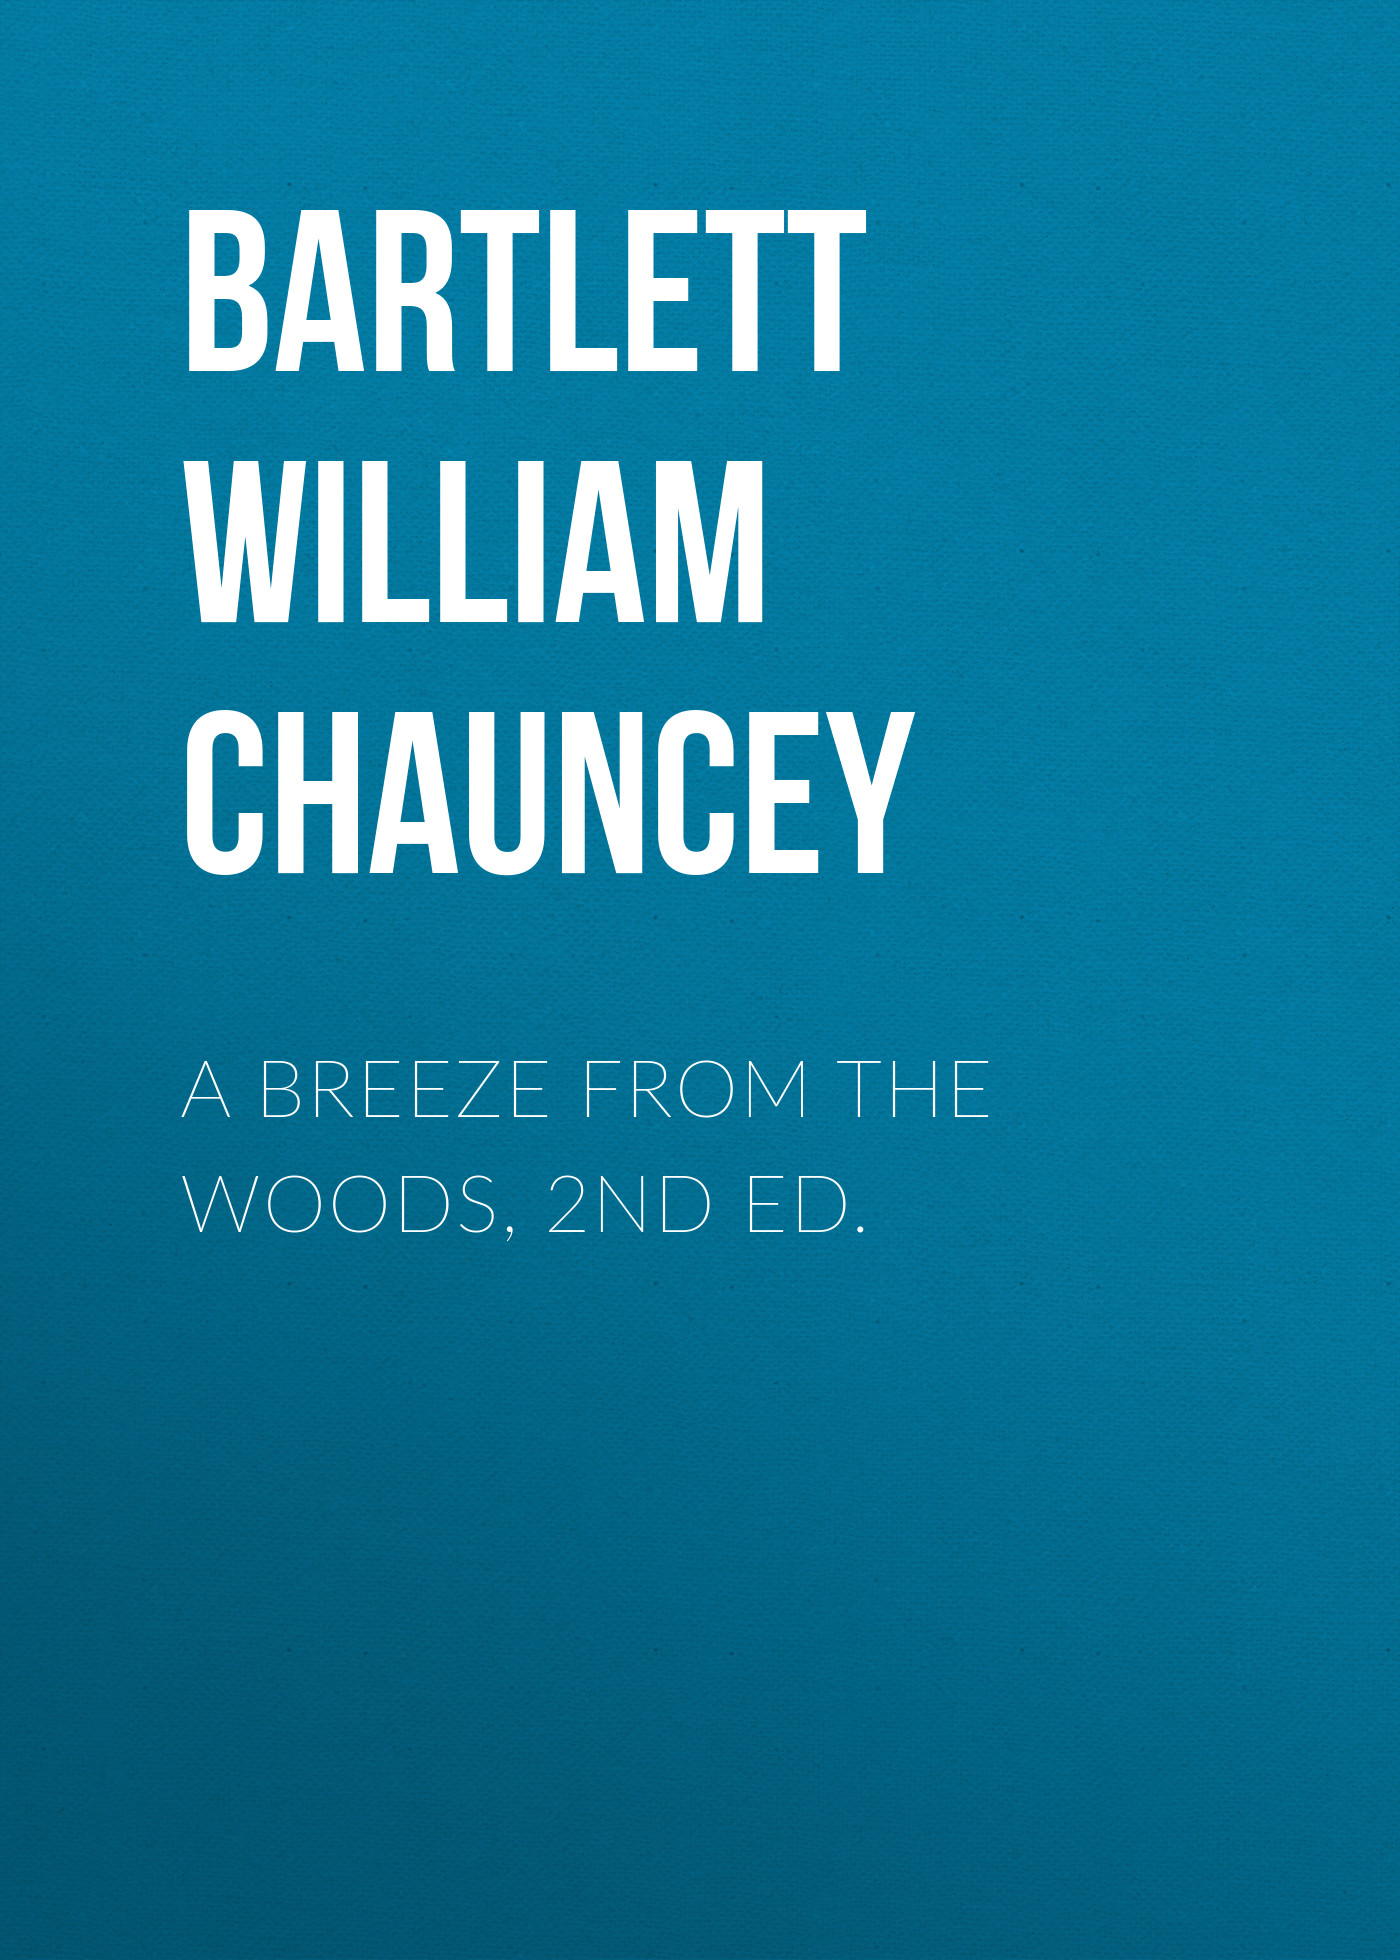 Bartlett William Chauncey A Breeze from the Woods, 2nd Ed.